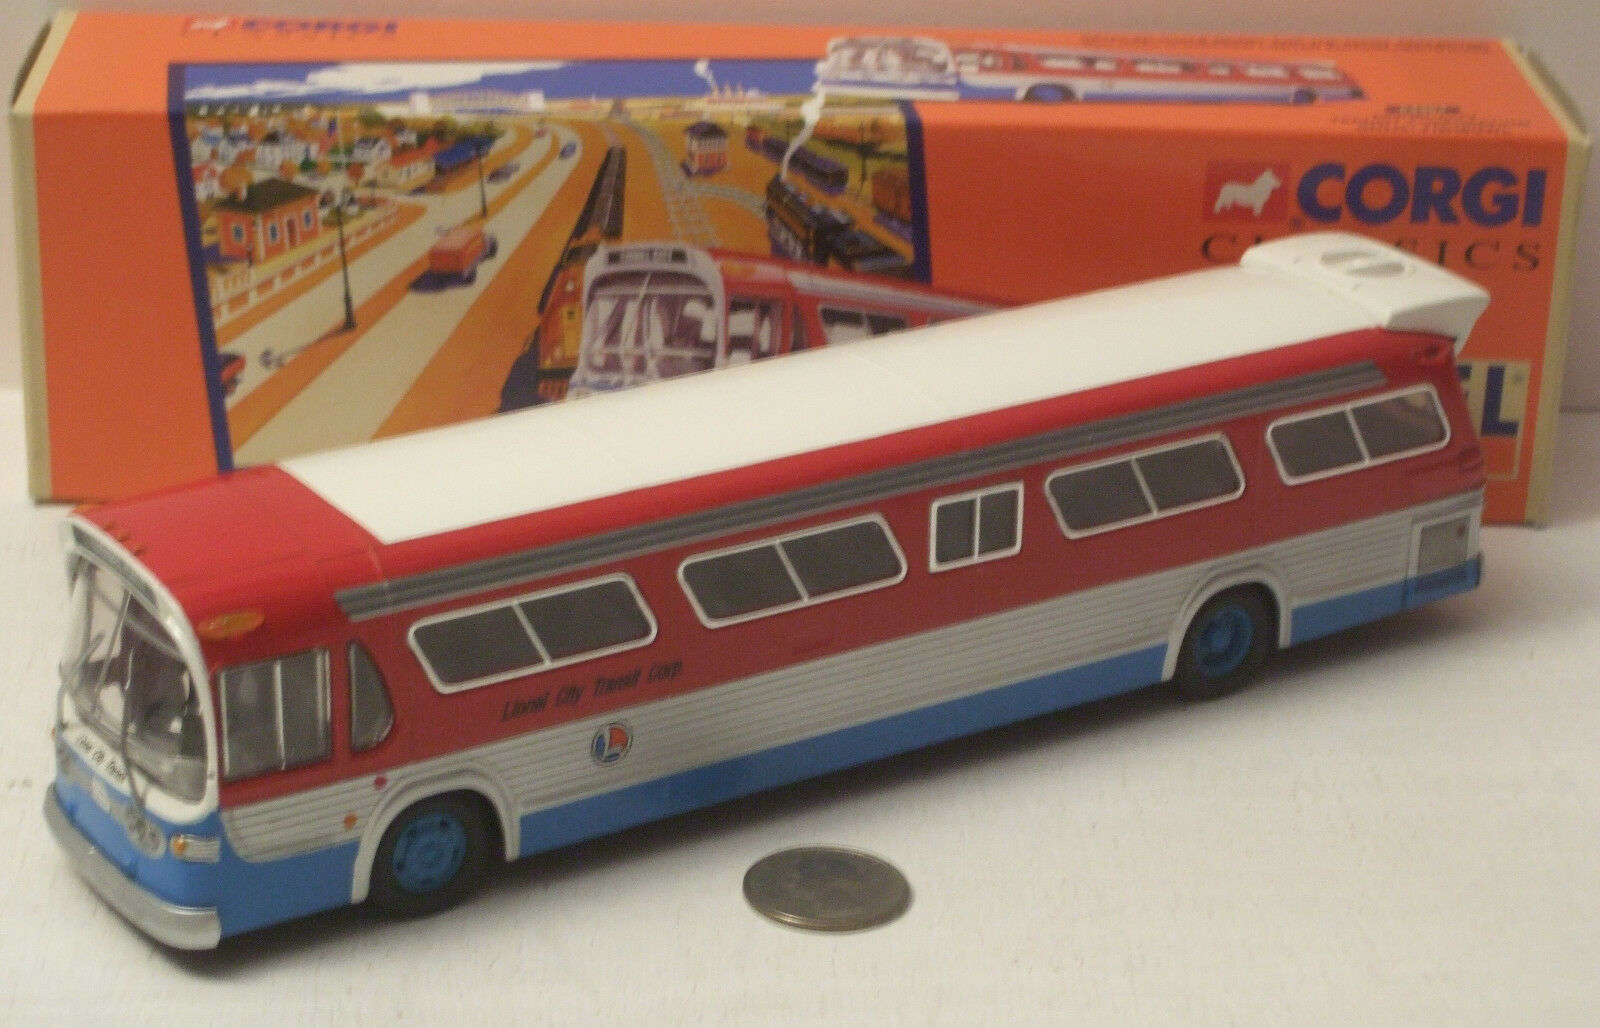 Corgi Fishbowl Lionel City Transit Corp. Bus GM5301  54404 New in Box 1 50 scale